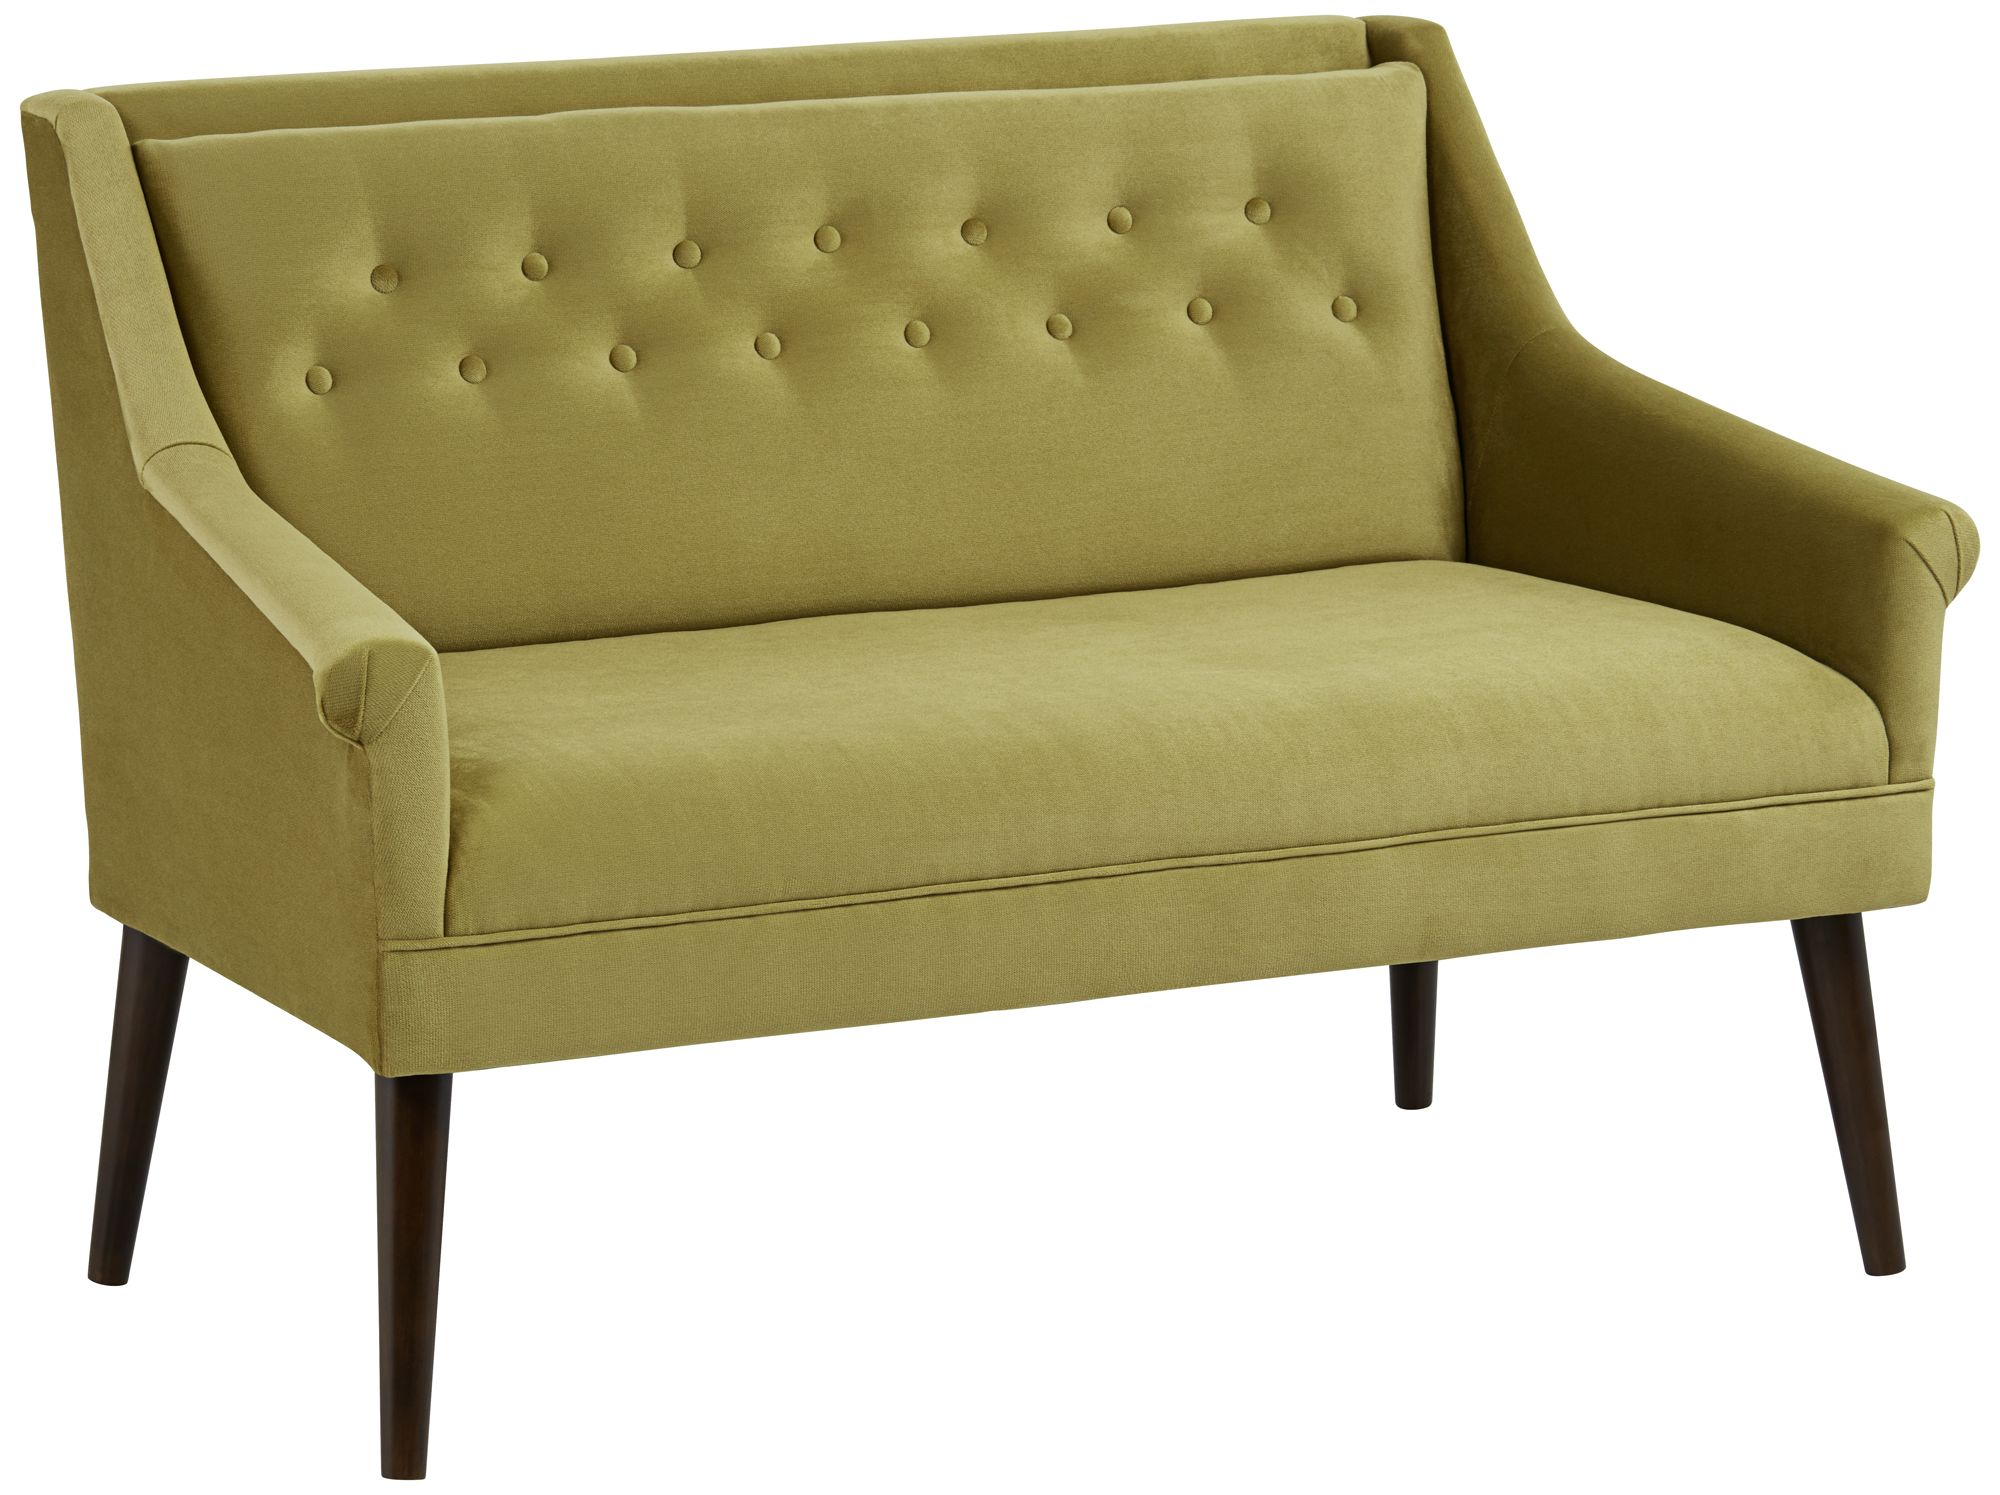 Antone Mystere Macaw Tufted Settee